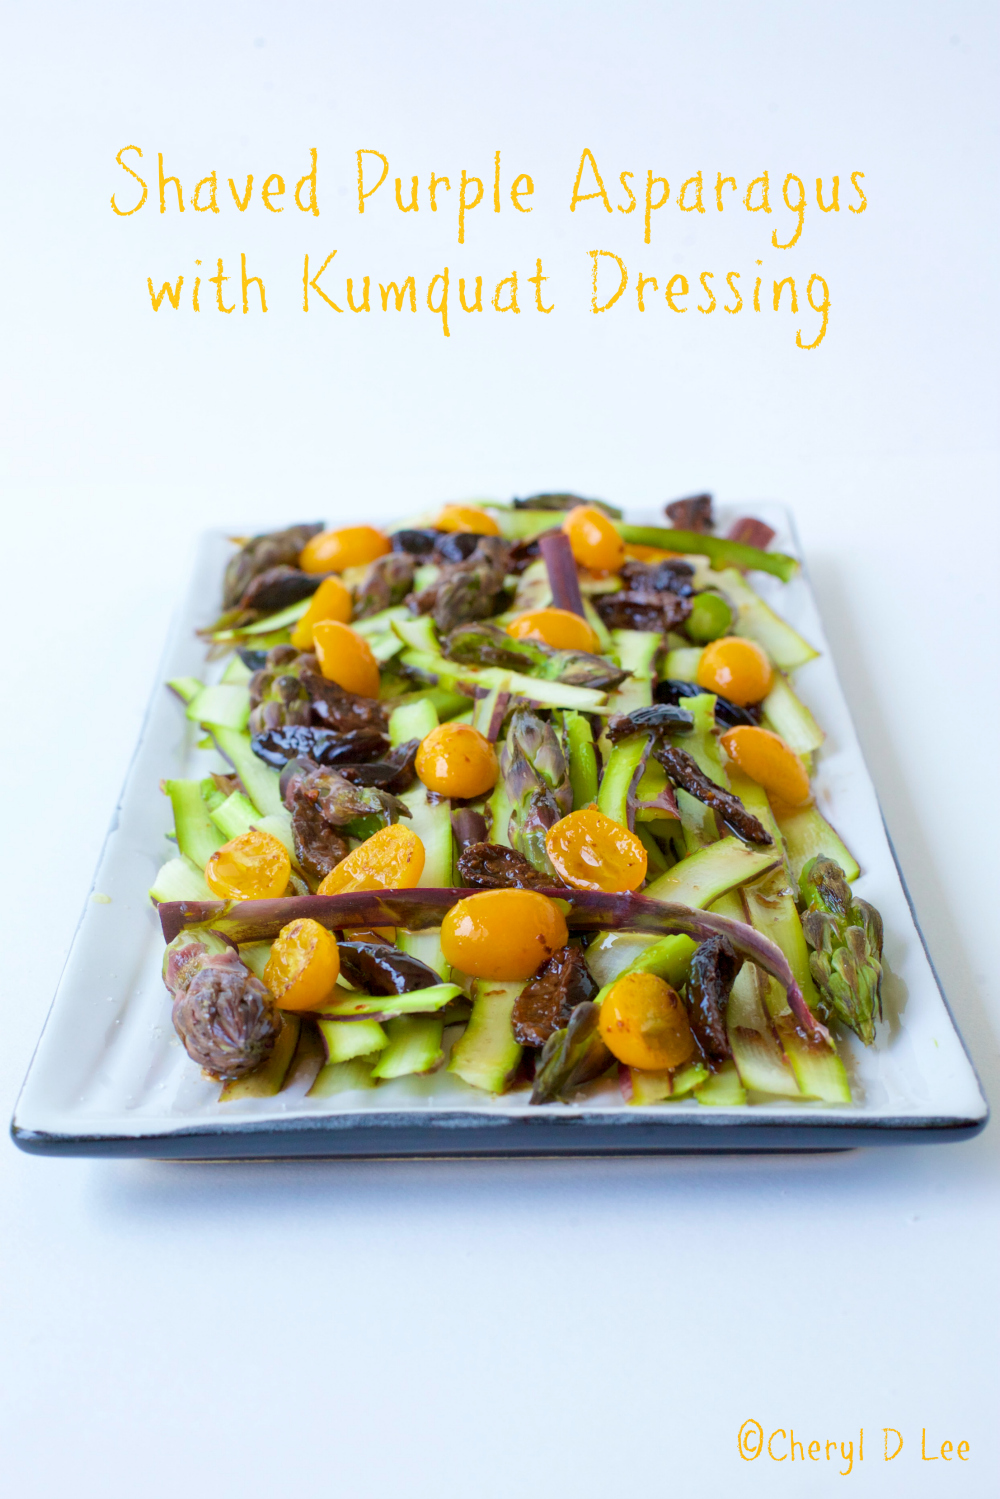 Shaved Purple Asparagus Salad with Kumquat Dressing